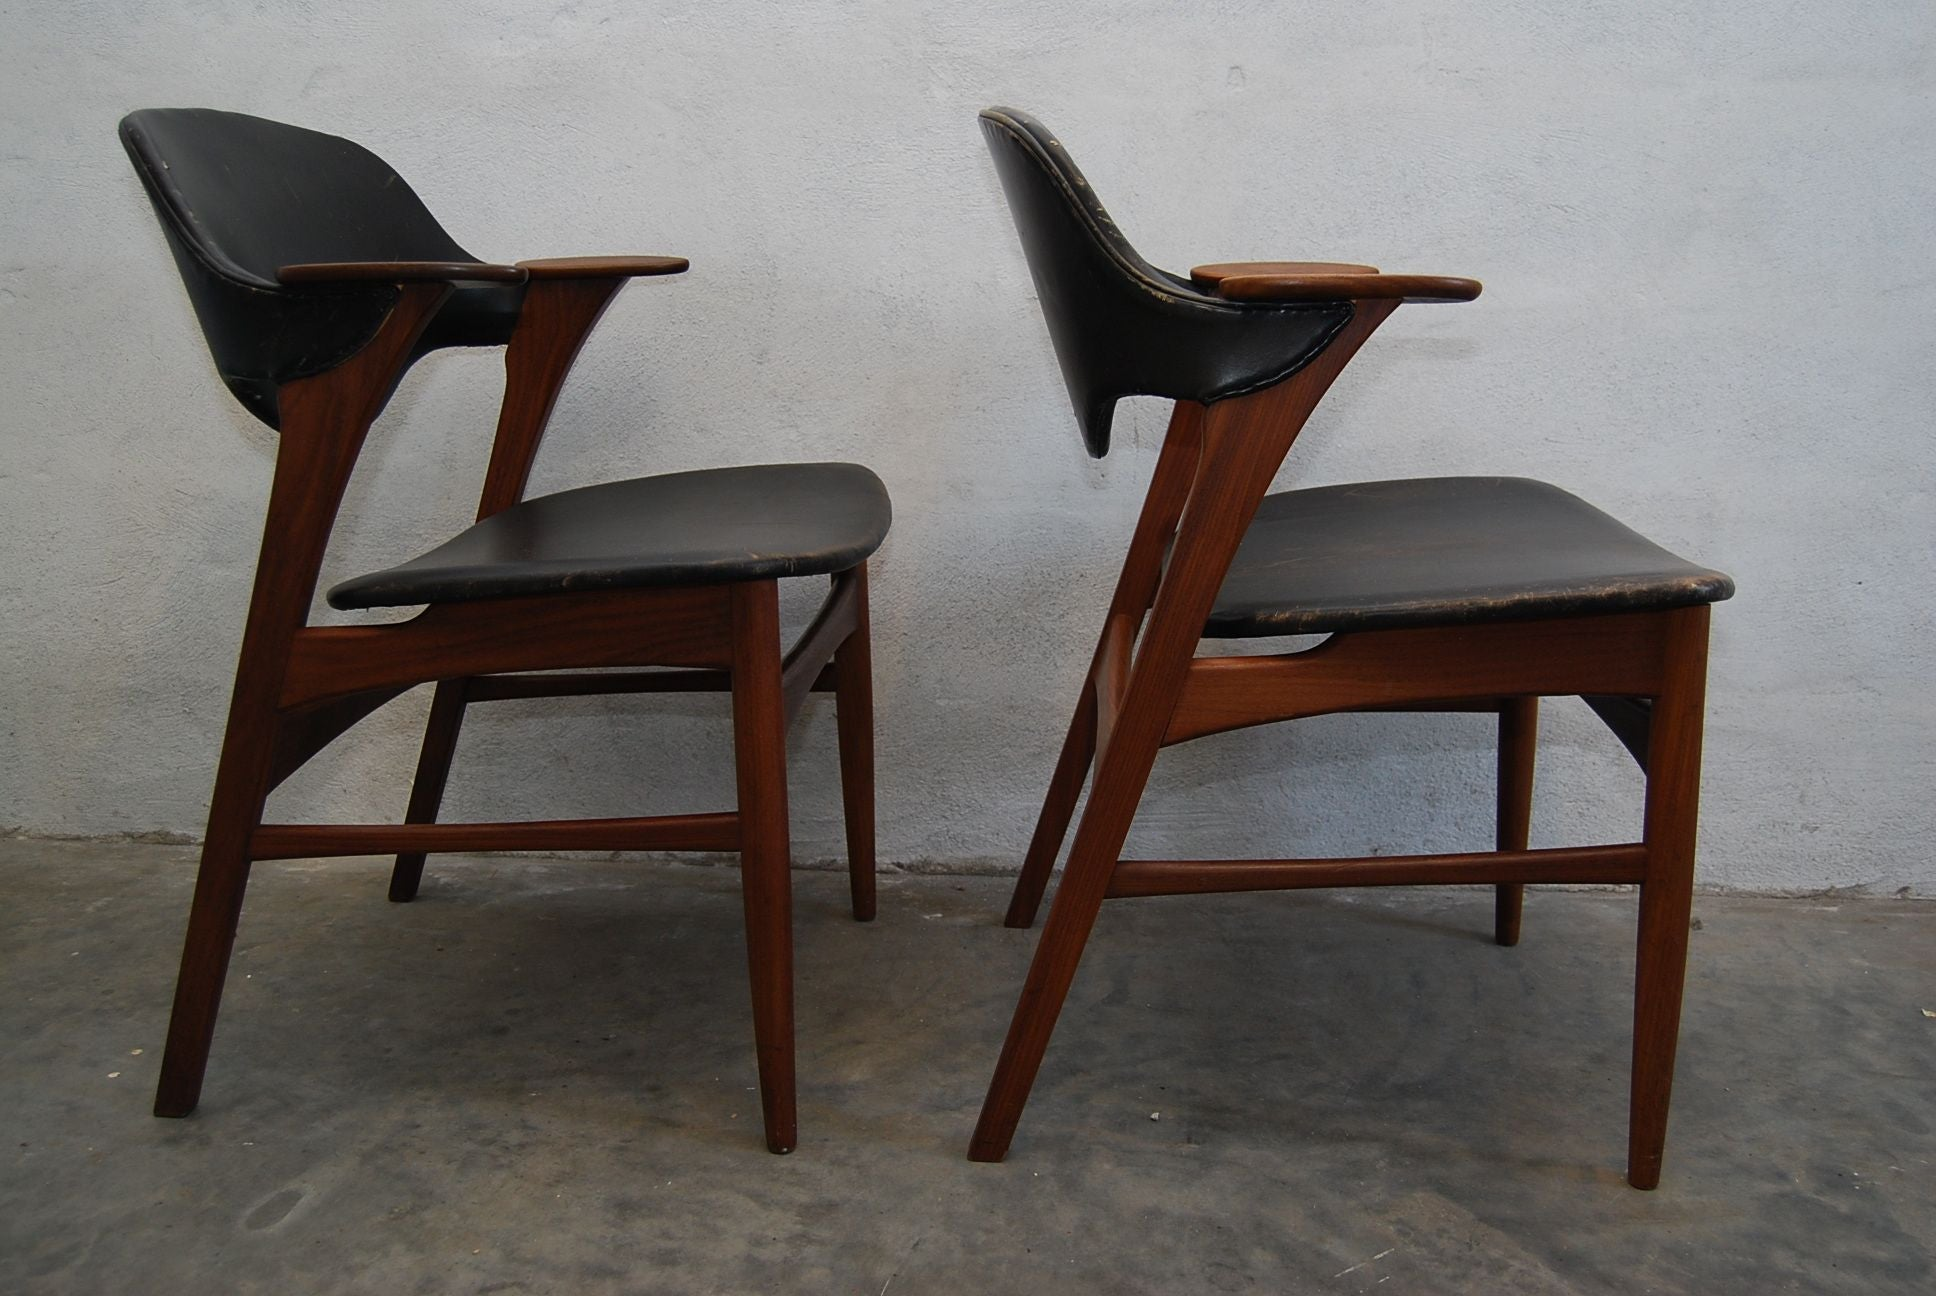 Chase & Sorensen Set of Two Armchairs by Arne Vodder